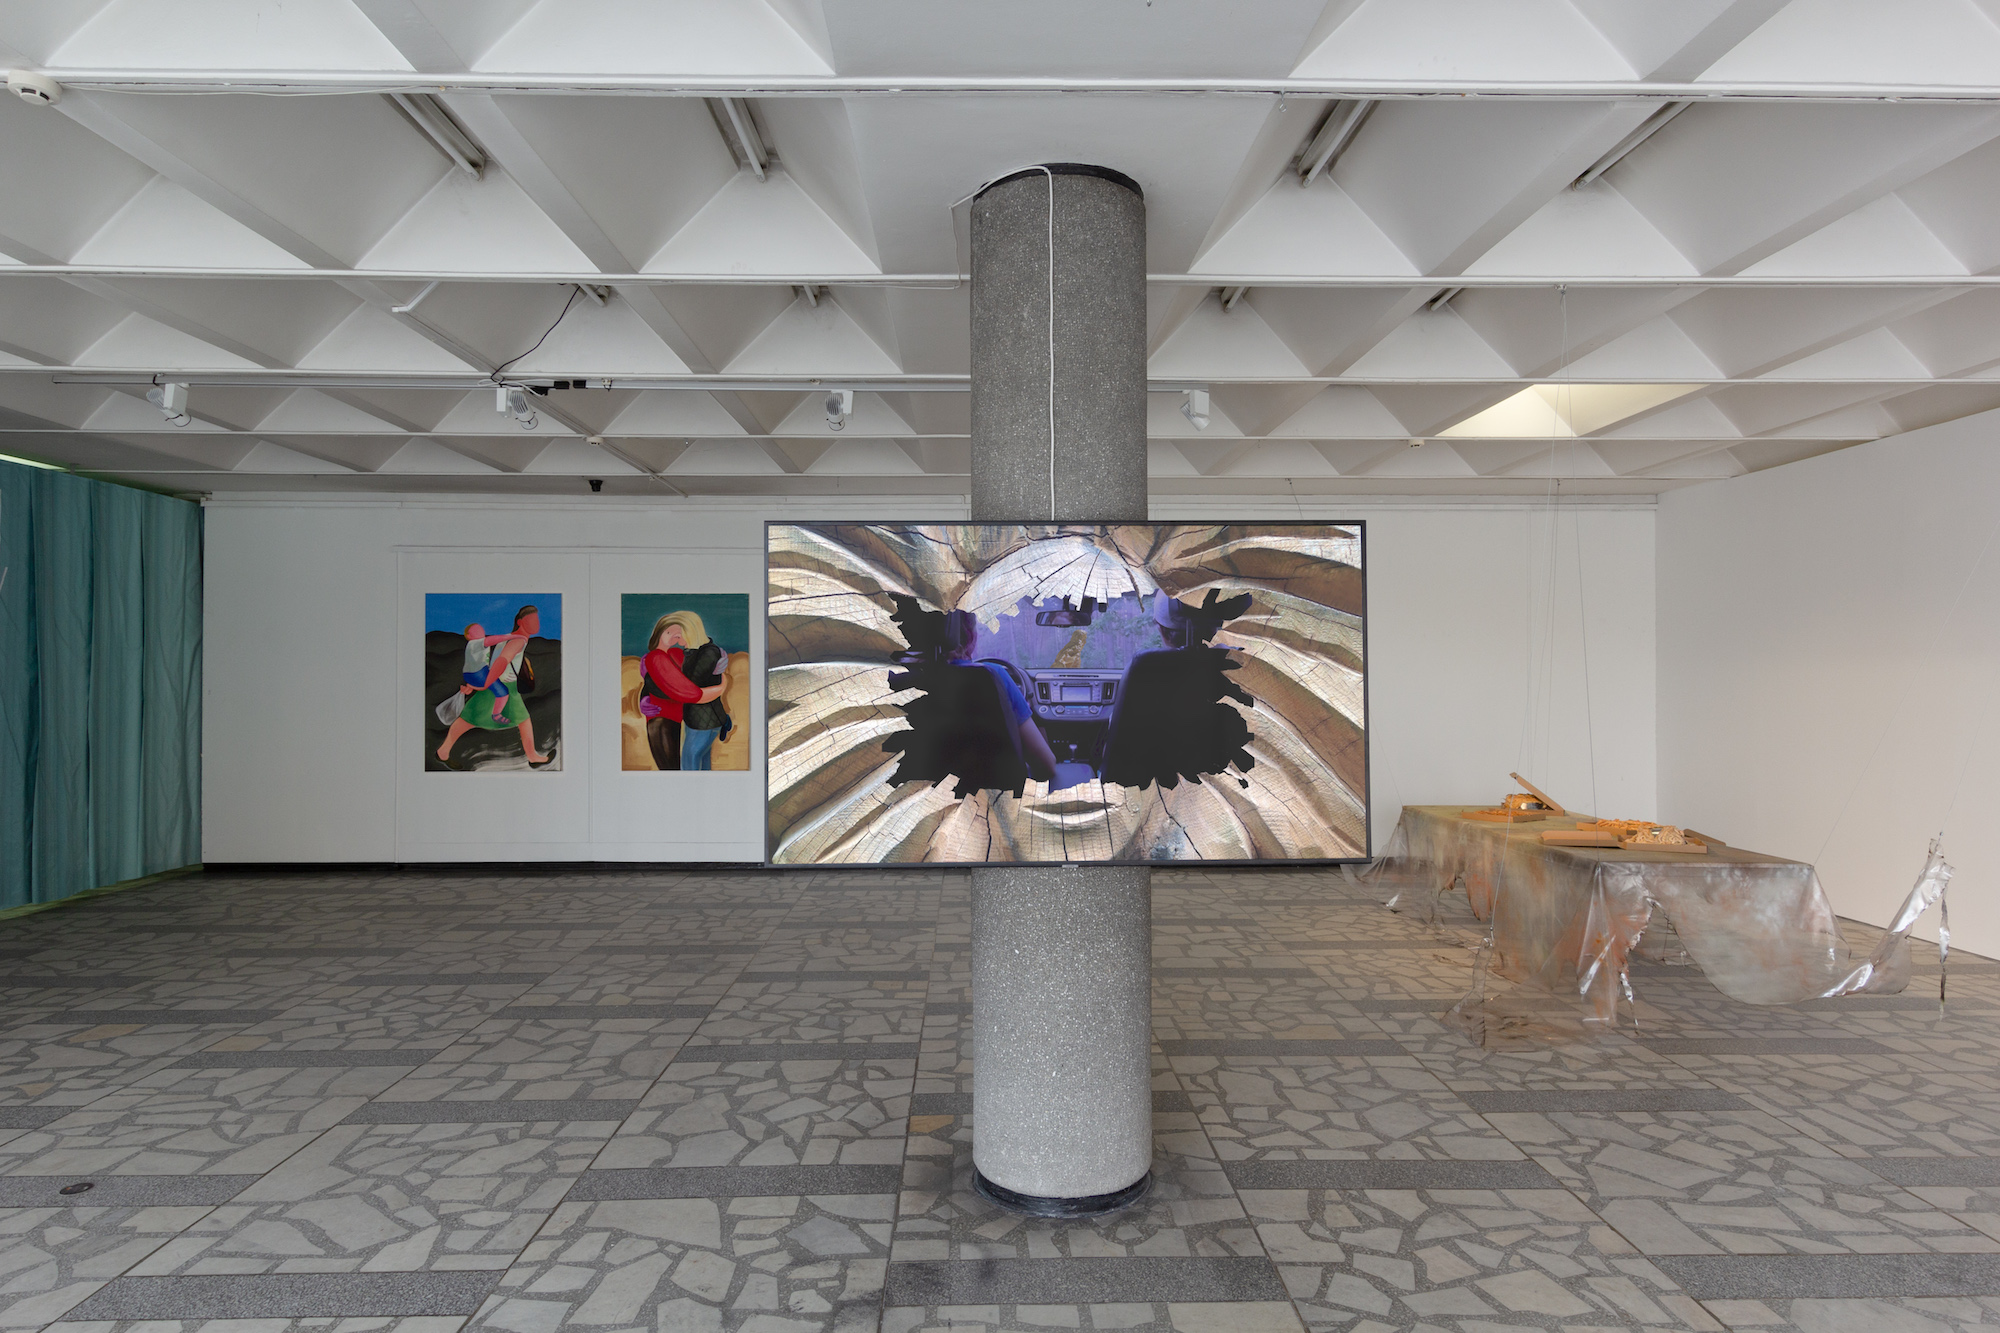 """Anastasia Sosunova, Agents, 2020. Courtesy the artist. Video commissioned for """"Roots to Routes,"""" 2020, curated by Juste Kostikovaite, Maija Rudovska and Merilin Talumaa, with the support of the Baltic Culture Fund. Installation view at Baltic Triennial 14: """"The Endless Frontier"""" curated by Valentinas Klimašauskas and João Laia, Contemporary Art Center in Vilnius, 2021. Photographer: Ugnius Gelguda"""